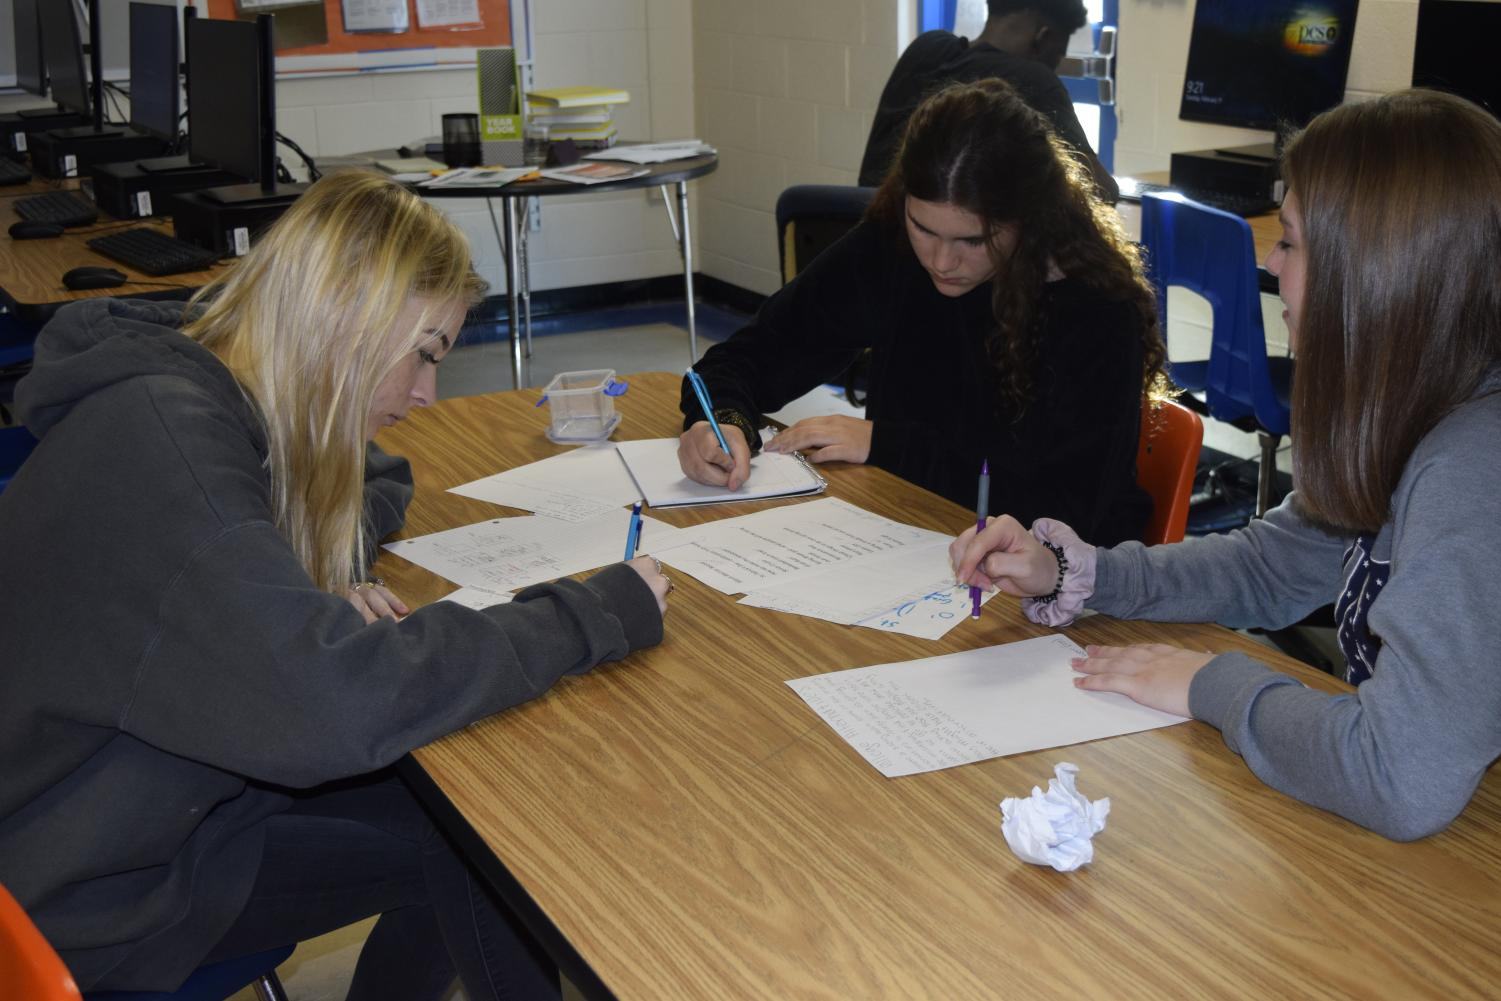 Osceola students work their hardest to avoid being overwhelmed.